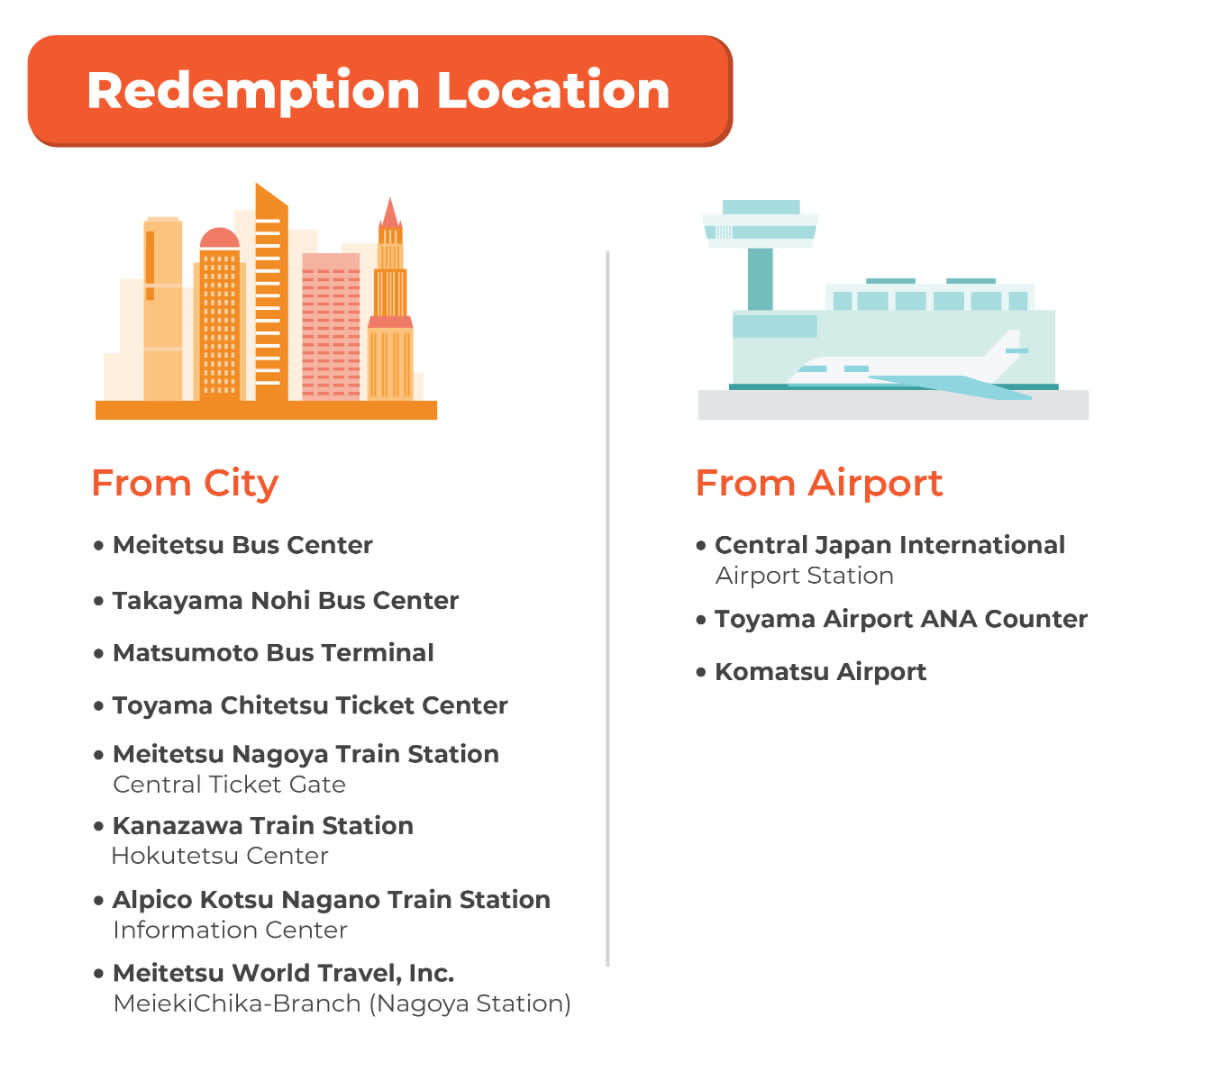 shoryudo highway bus pass redemption locations